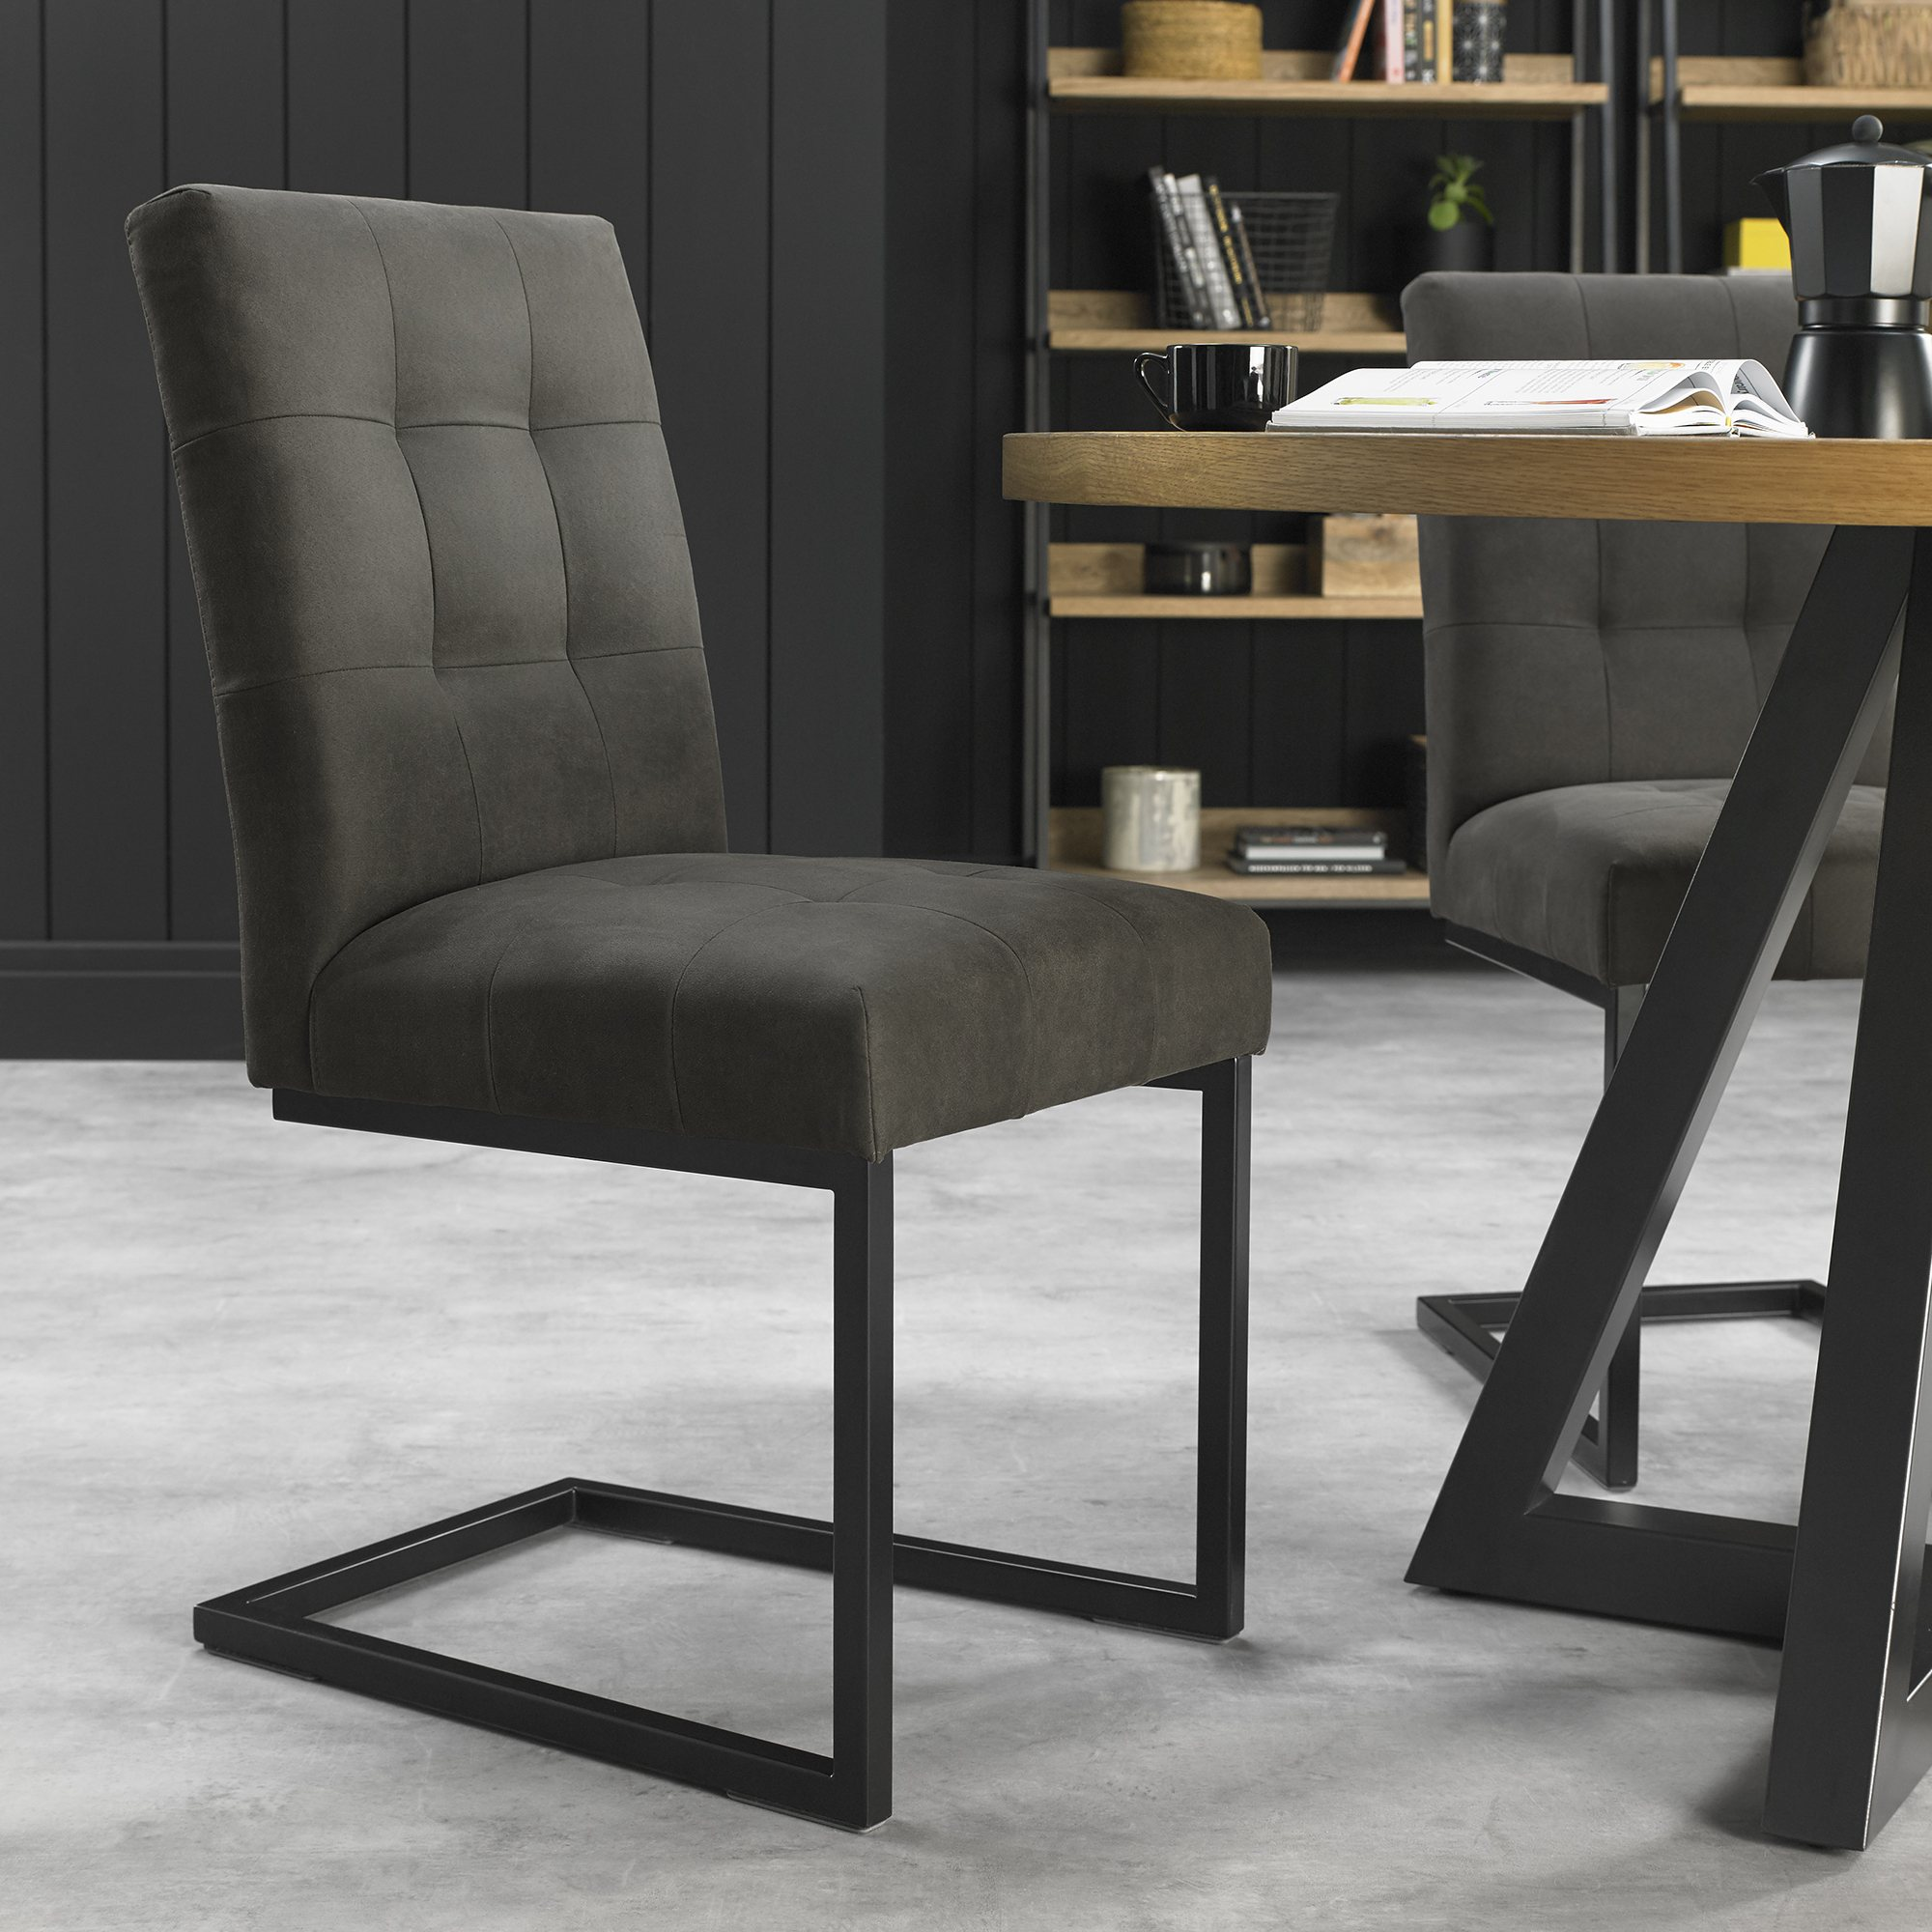 CANTER GREY DINING CHAIR– L54.5cm x D60cm x H85.5cm